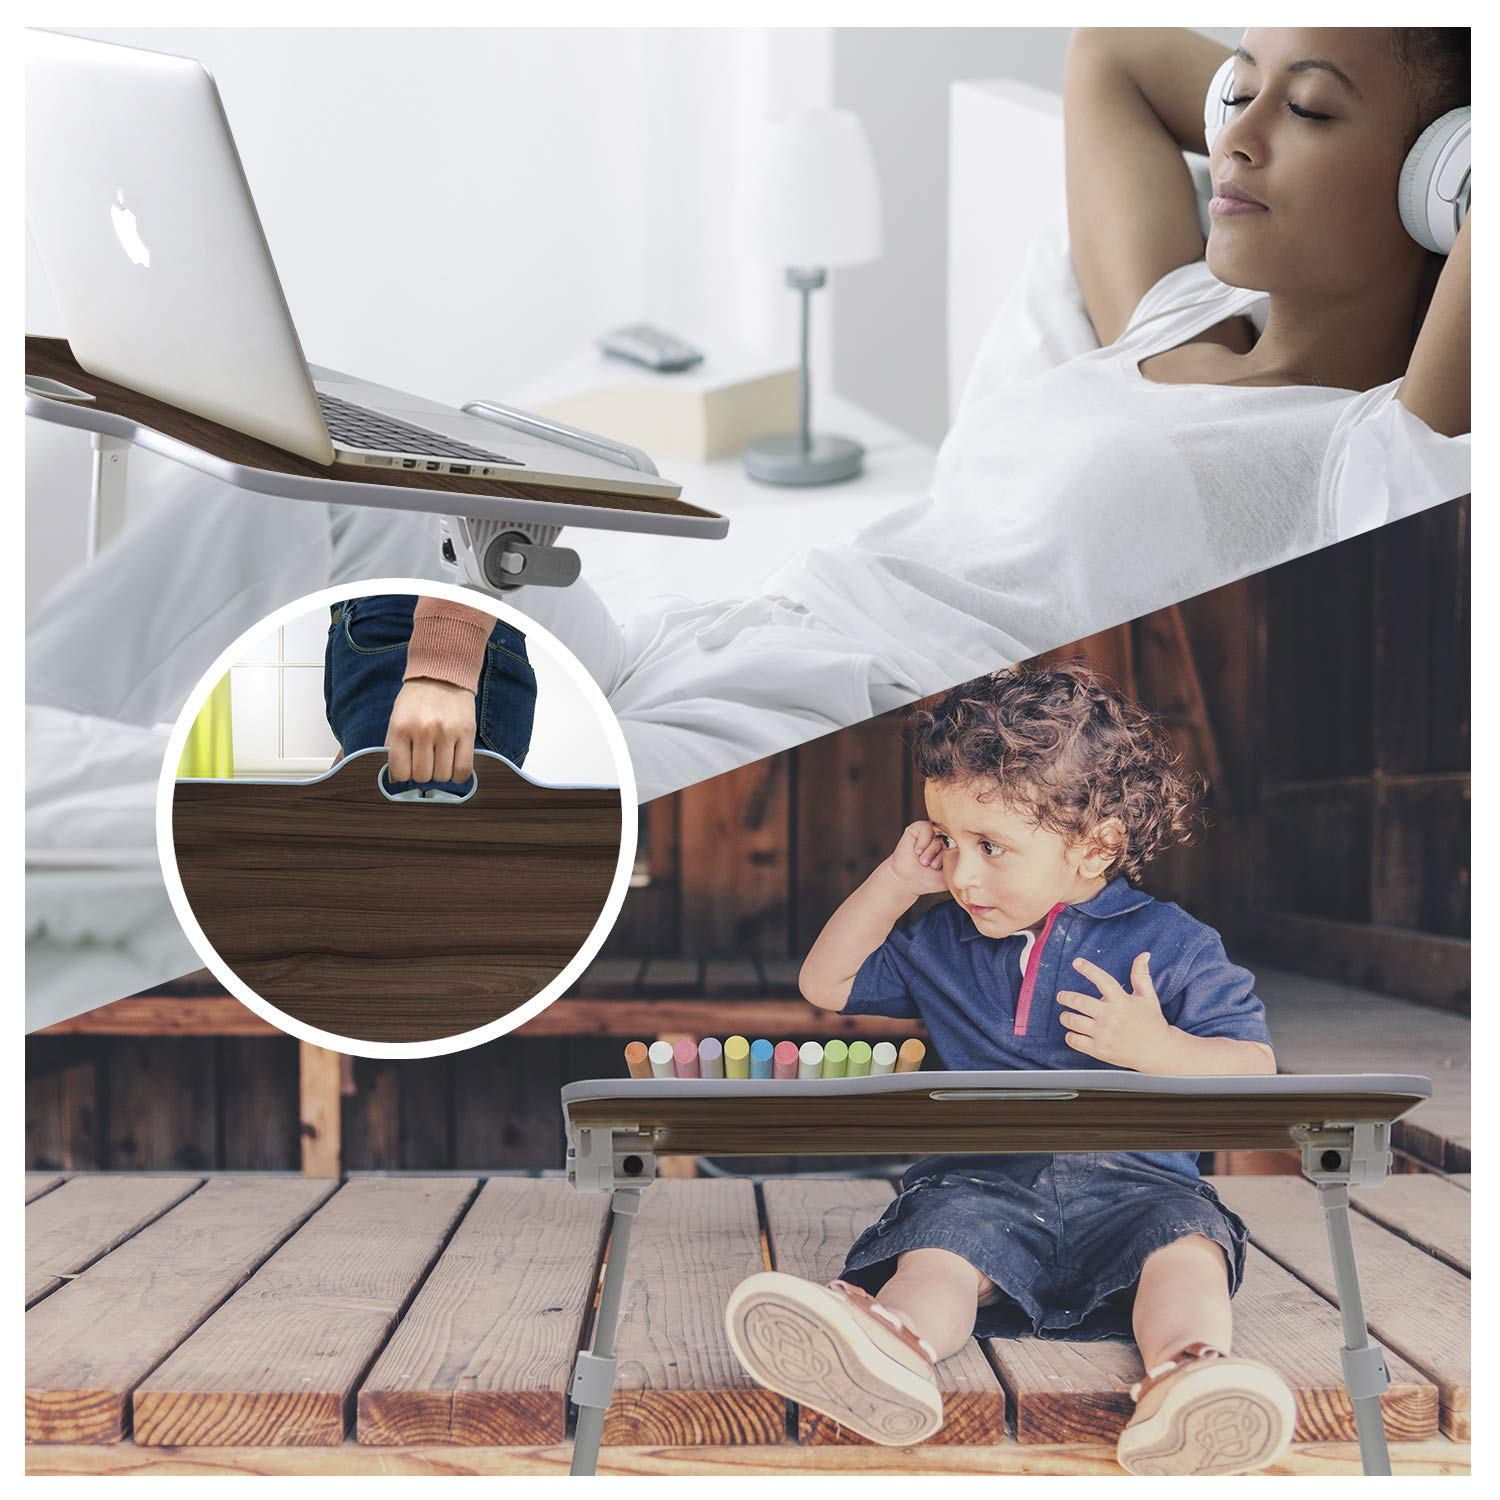 Kavalan Large Size Portable Laptop Table with Handle, Height & Angle Adjustable Sit and Stand Desk, Bed & Breakfast Table Tray, Foldable Notebook Stand Holder for Sofa Couch - Black Teak by Kavalan (Image #8)